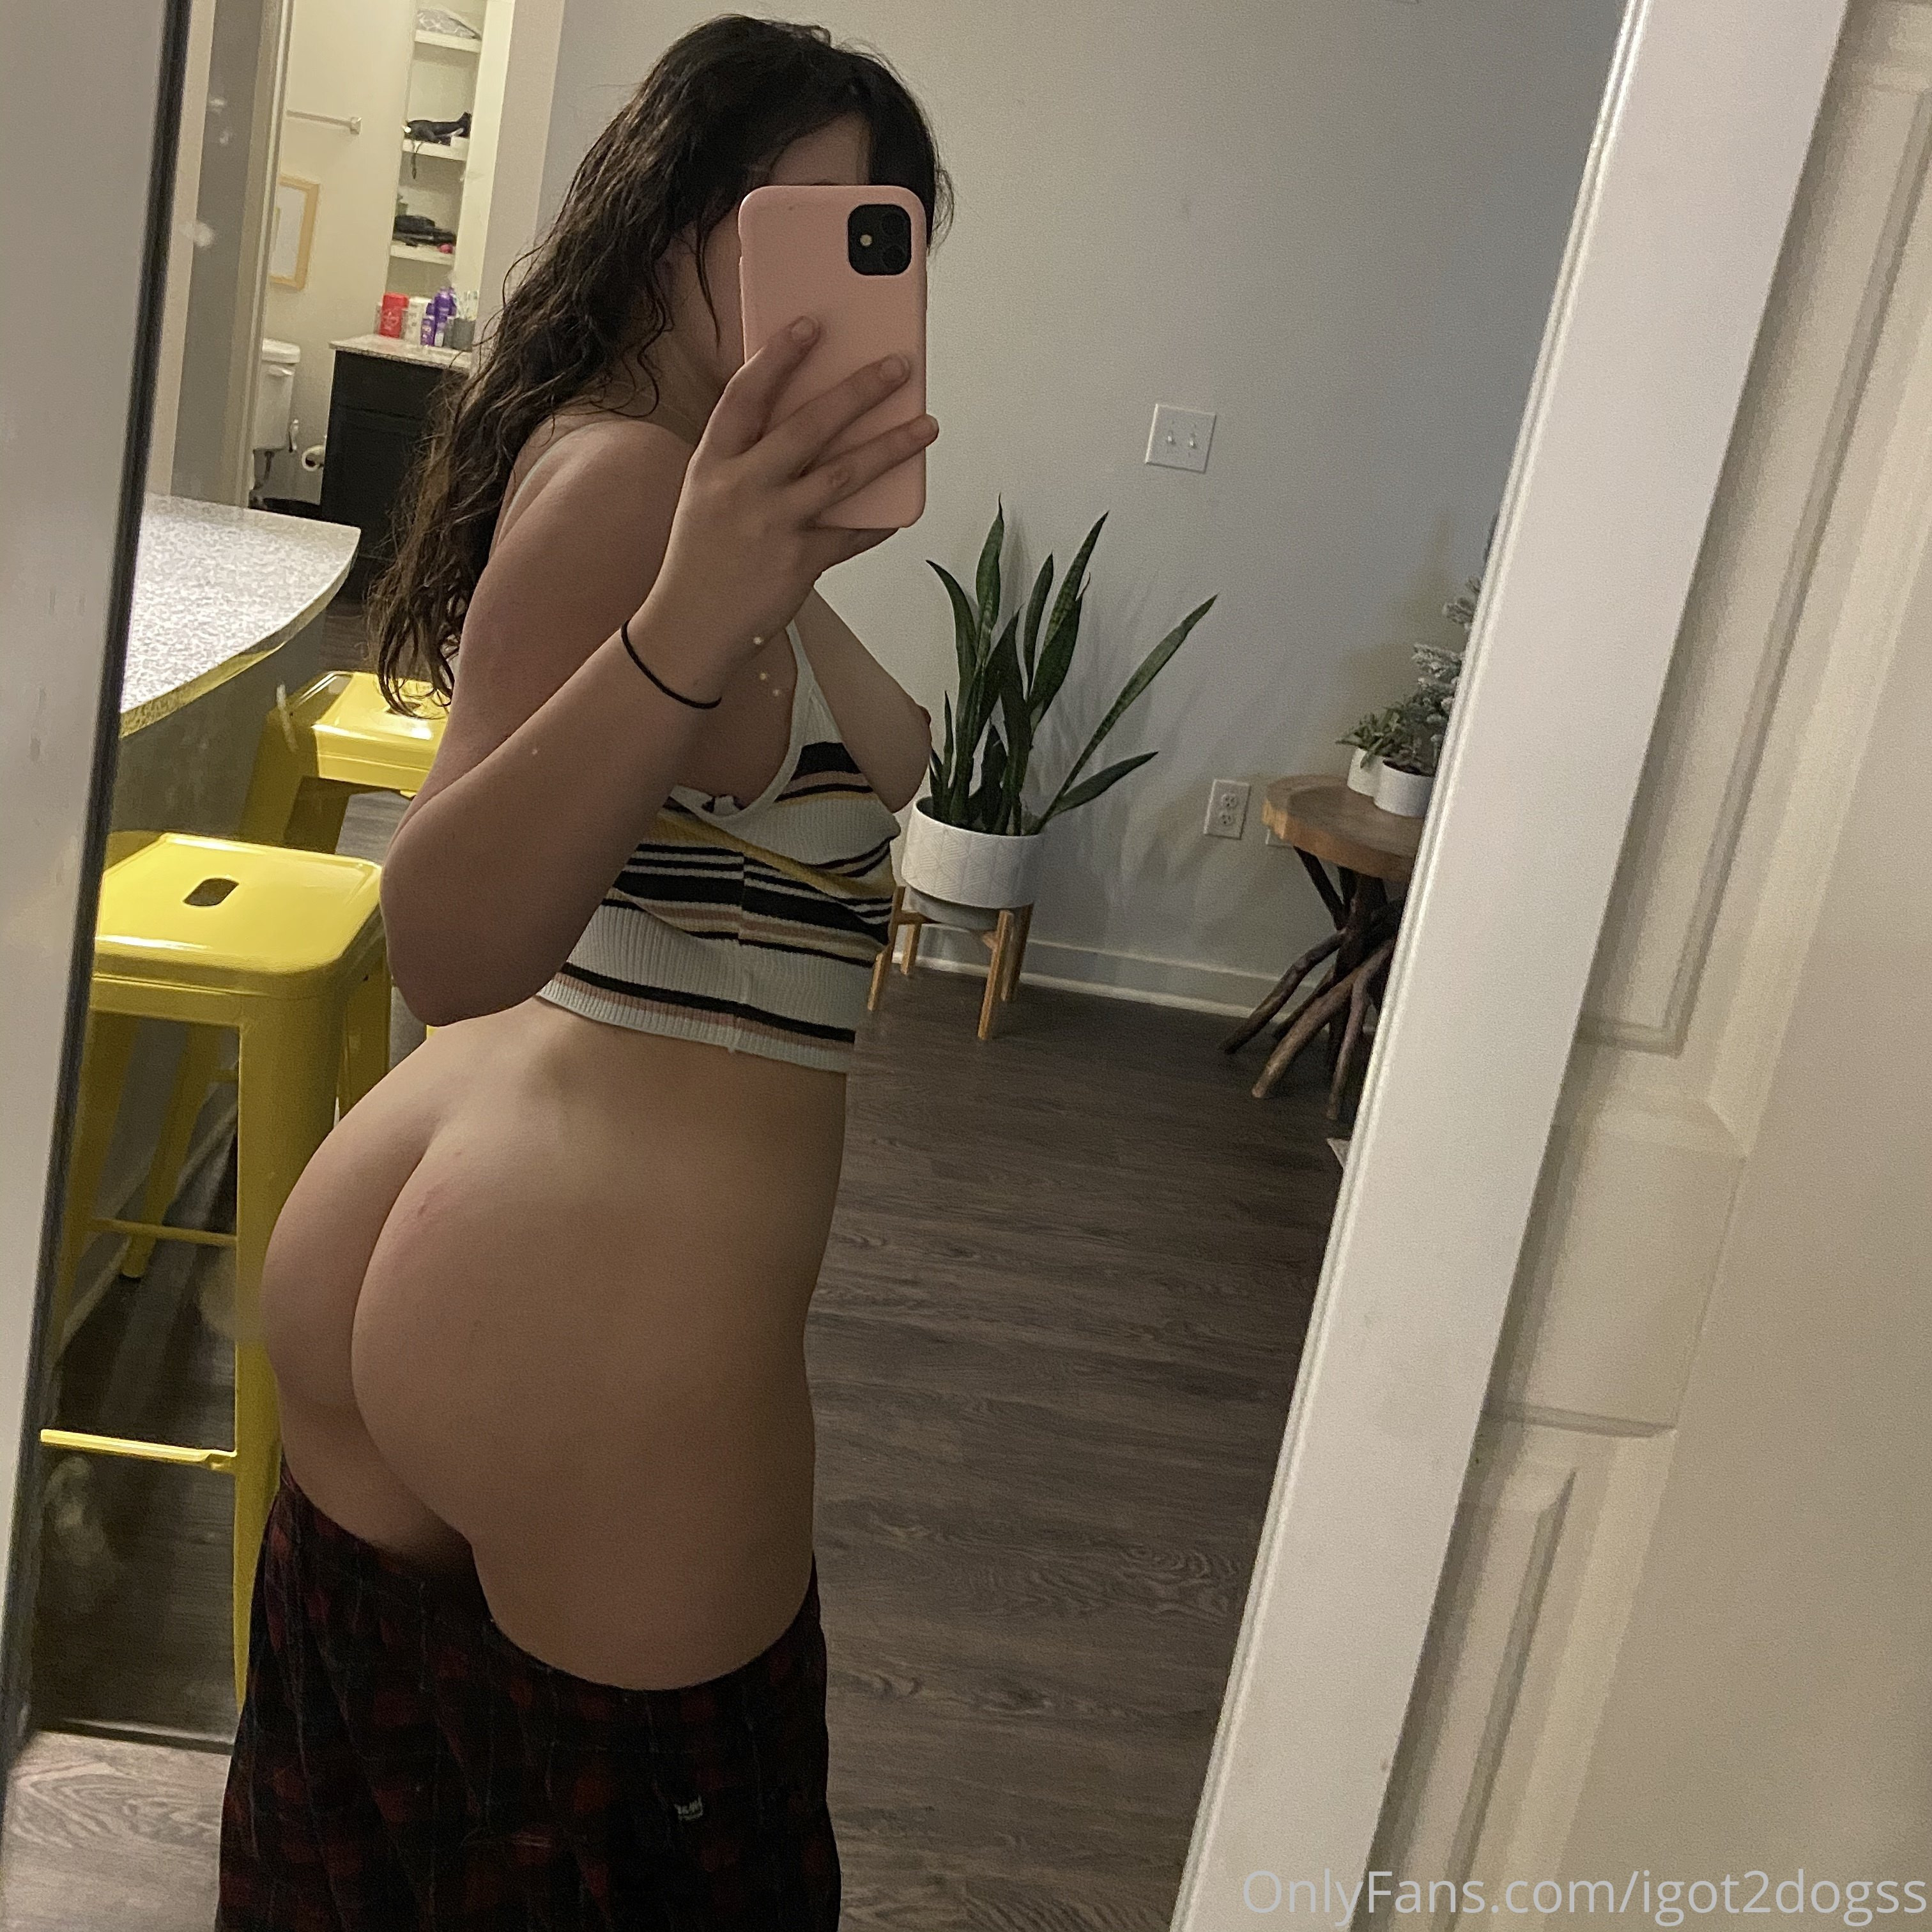 igot2dogss OnlyFans Leaked Nudes fappenings.com 101